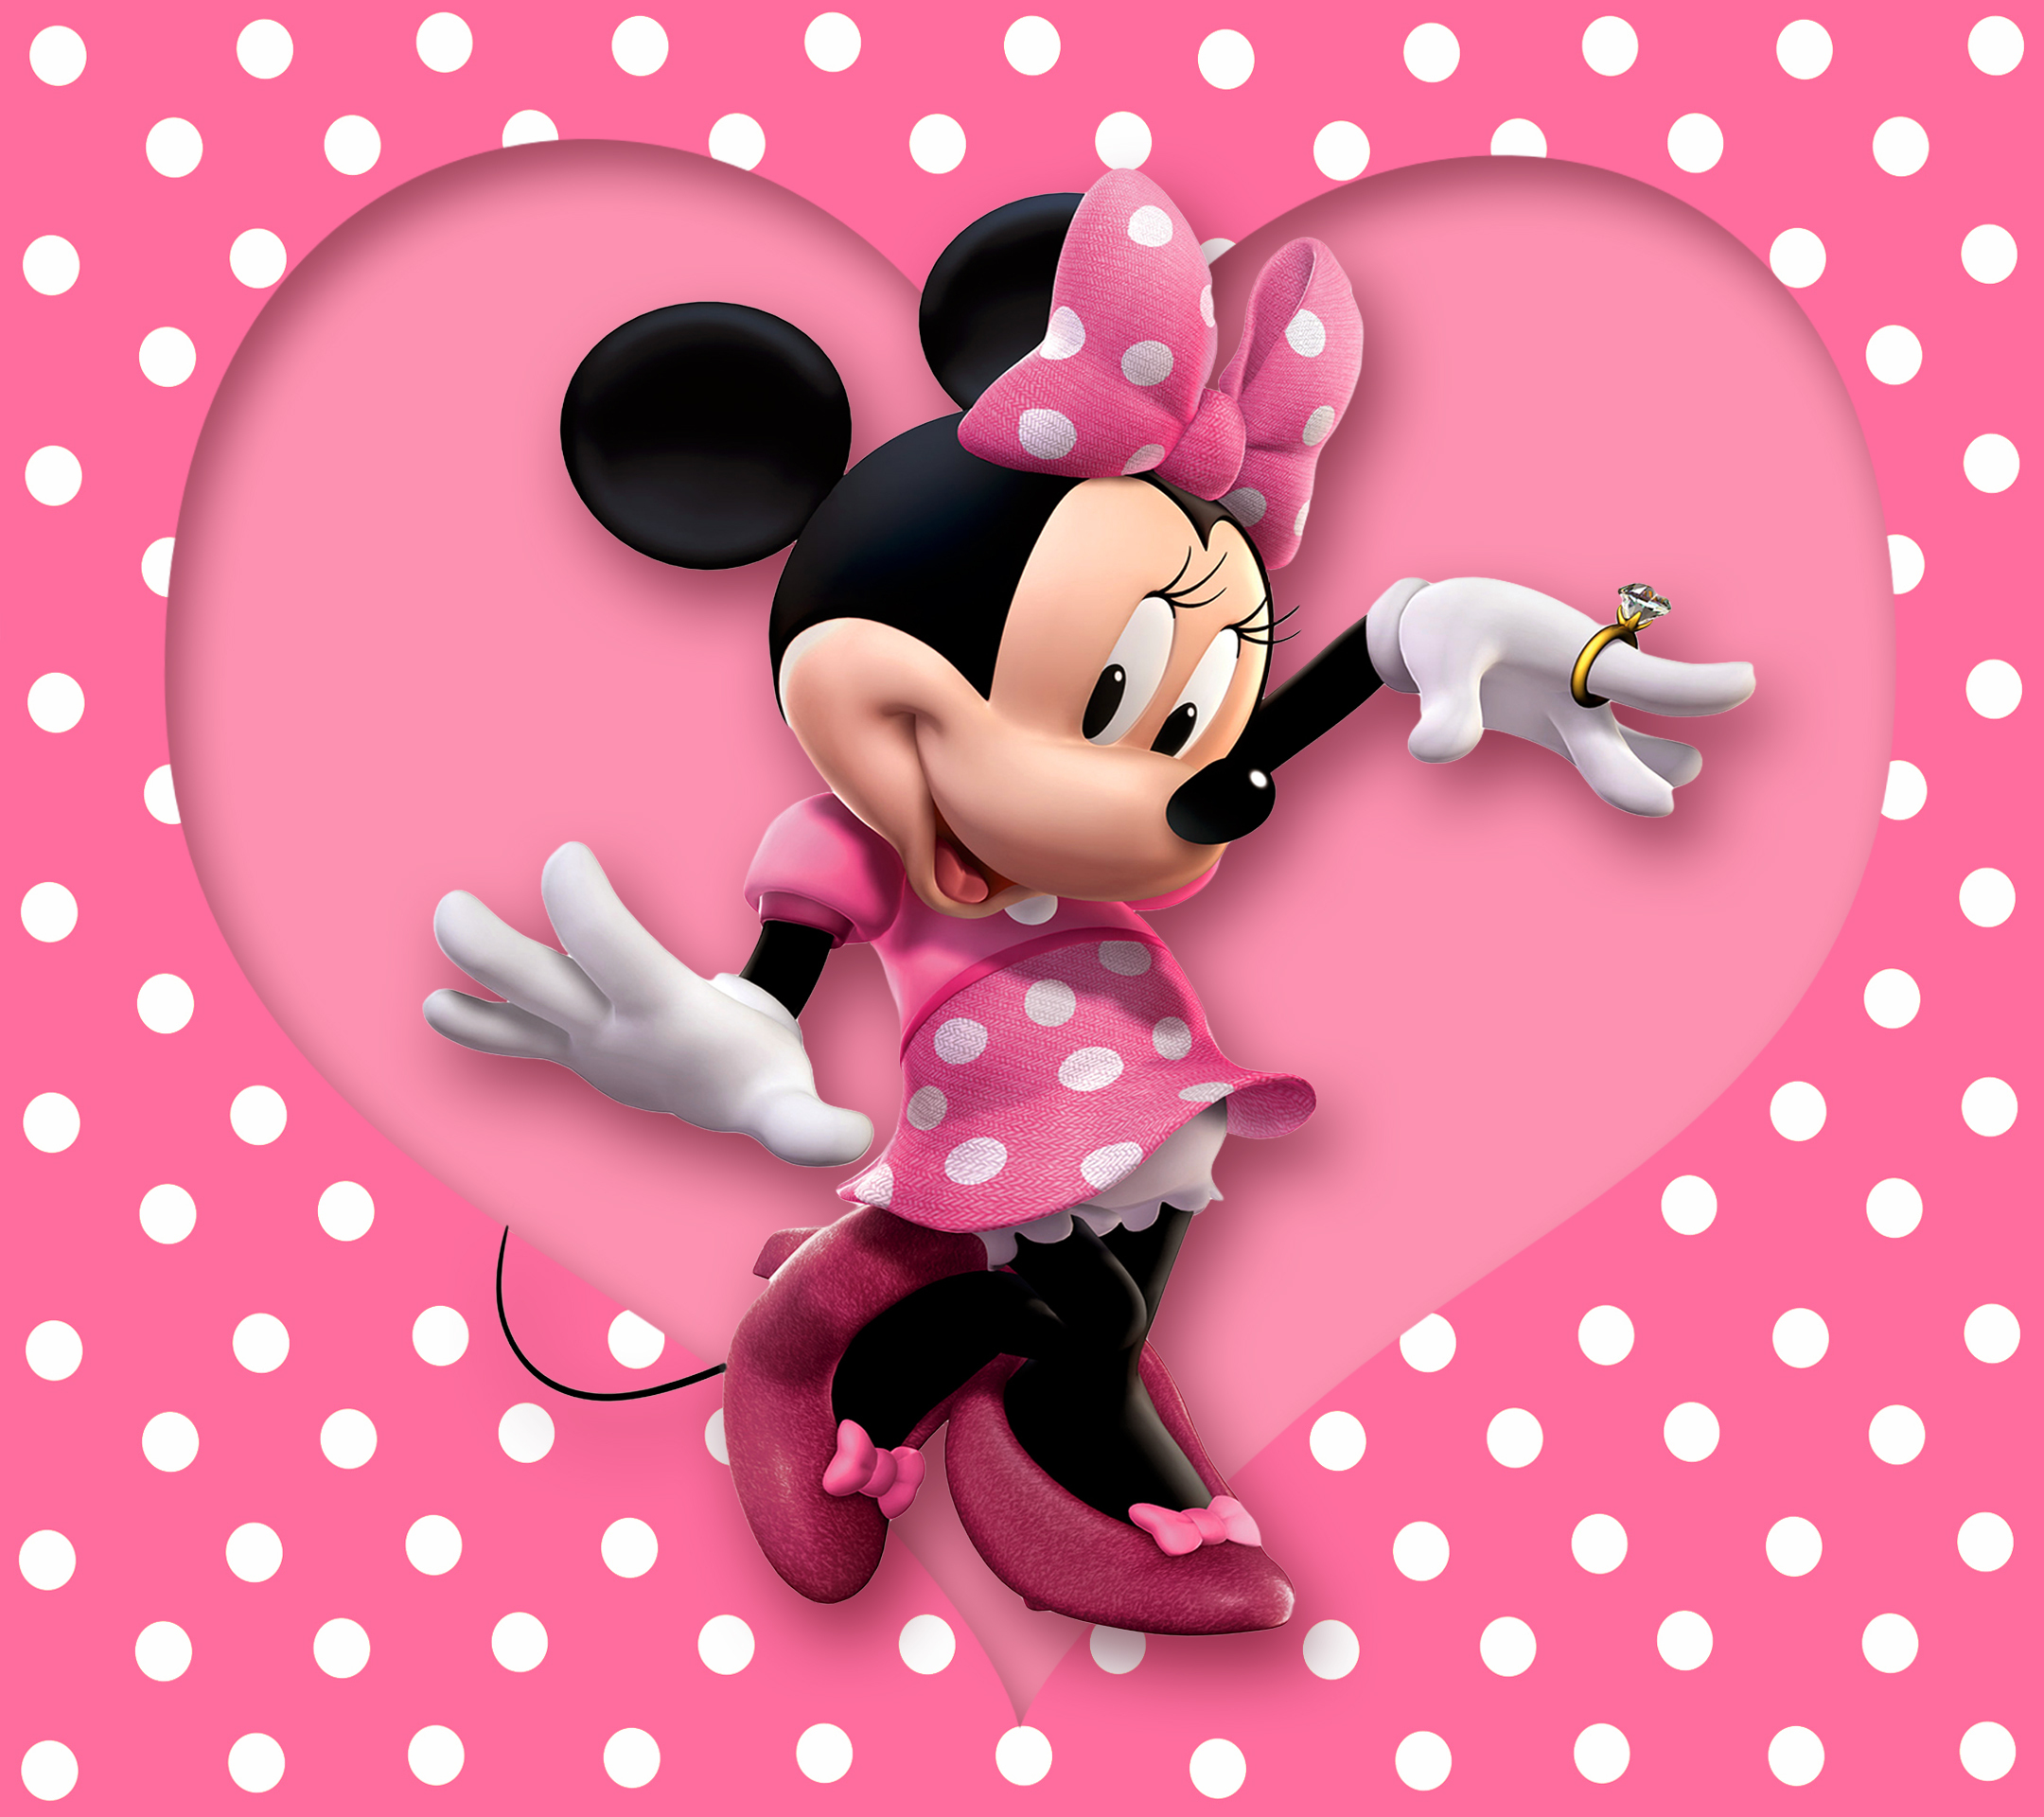 minnie mouse wallpapers pictures images. Black Bedroom Furniture Sets. Home Design Ideas